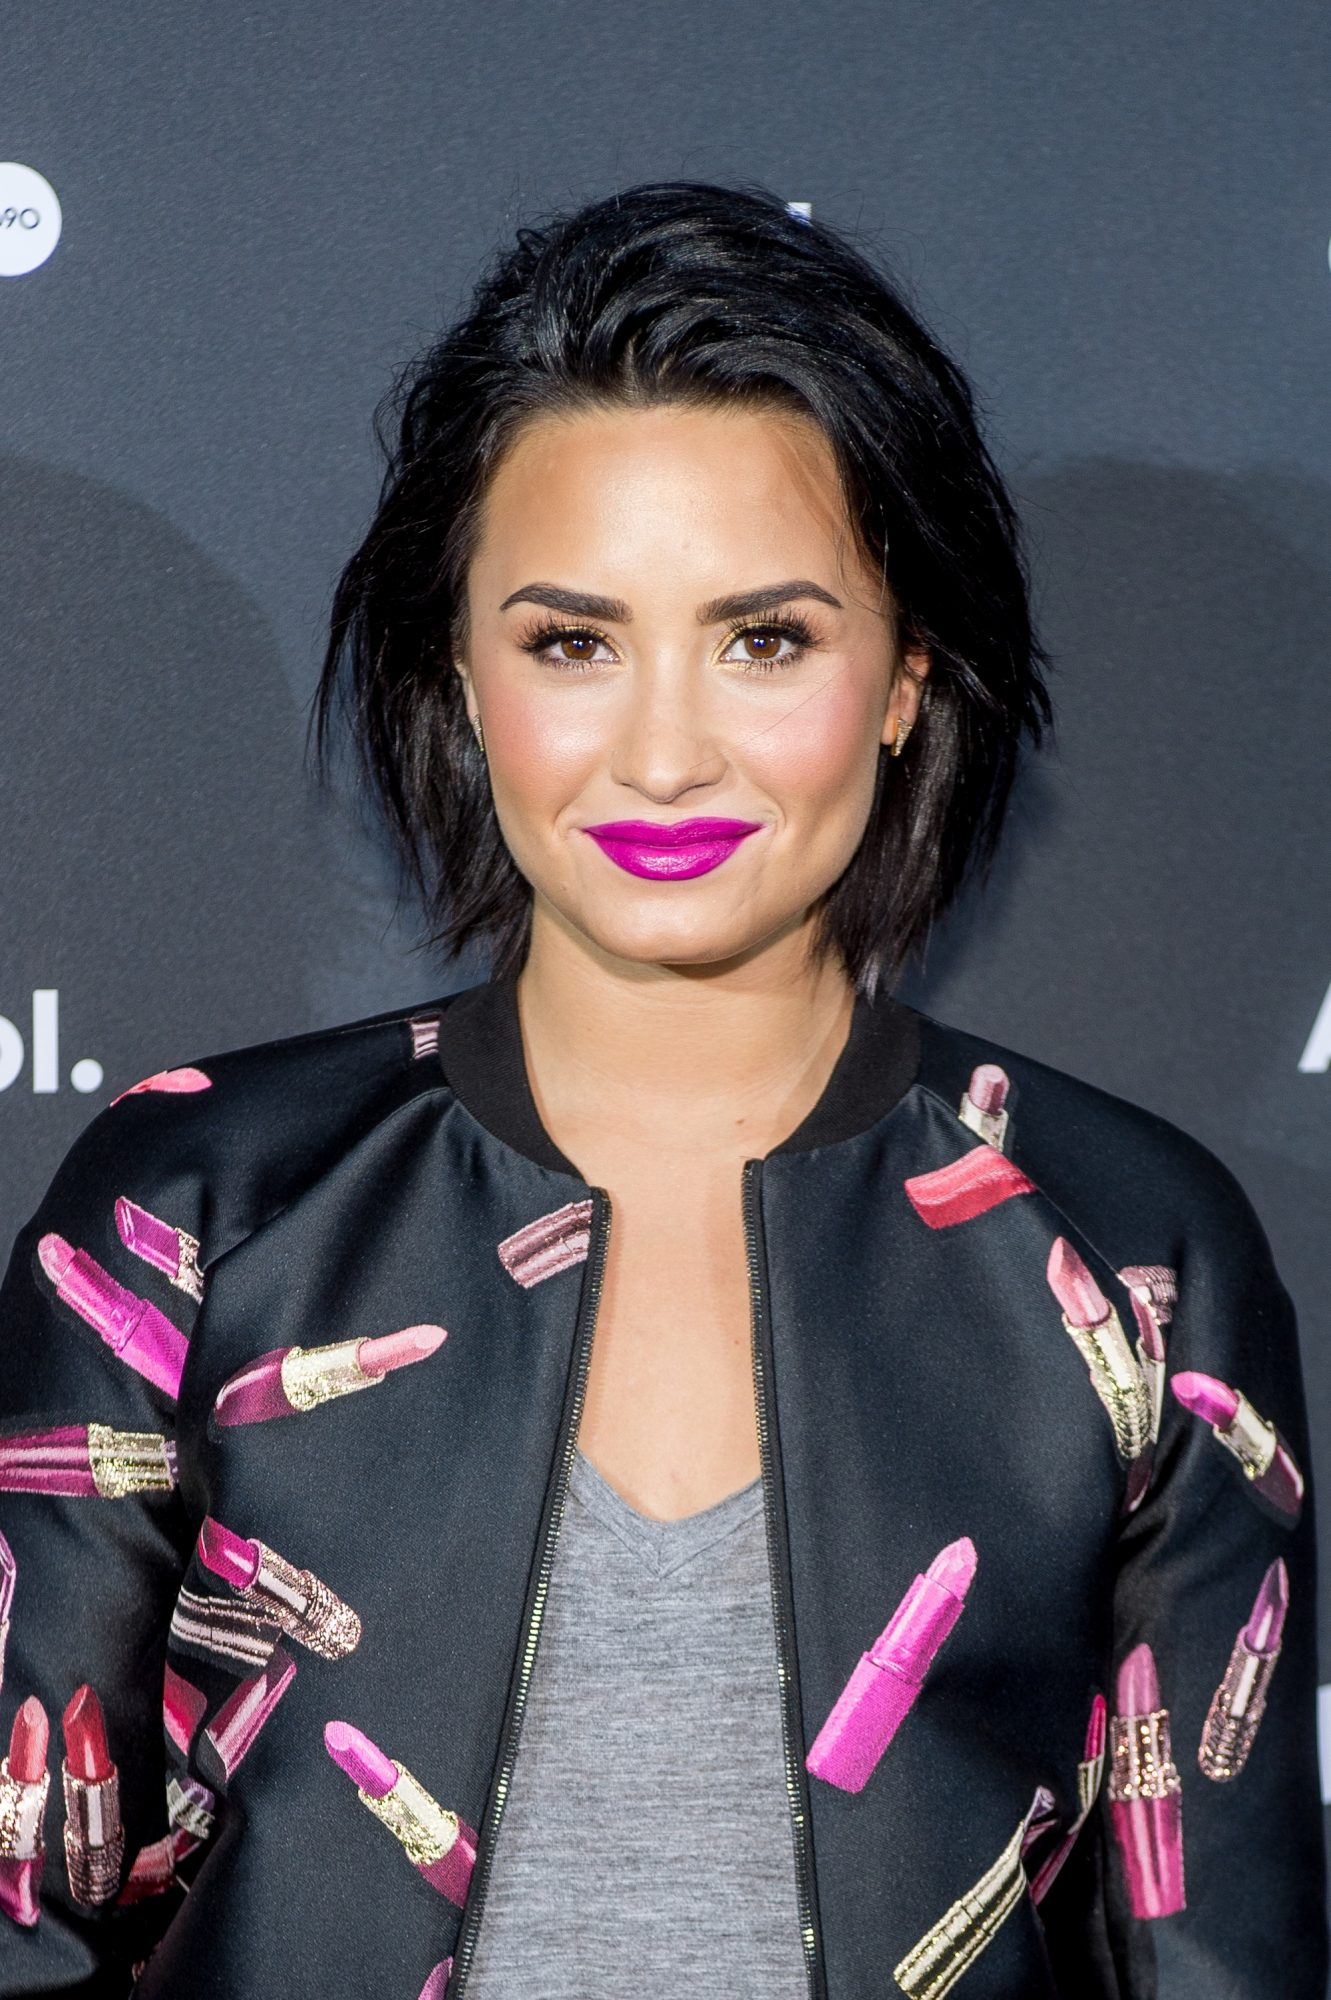 Demi Lovato's Workout Sessions are INTENSE